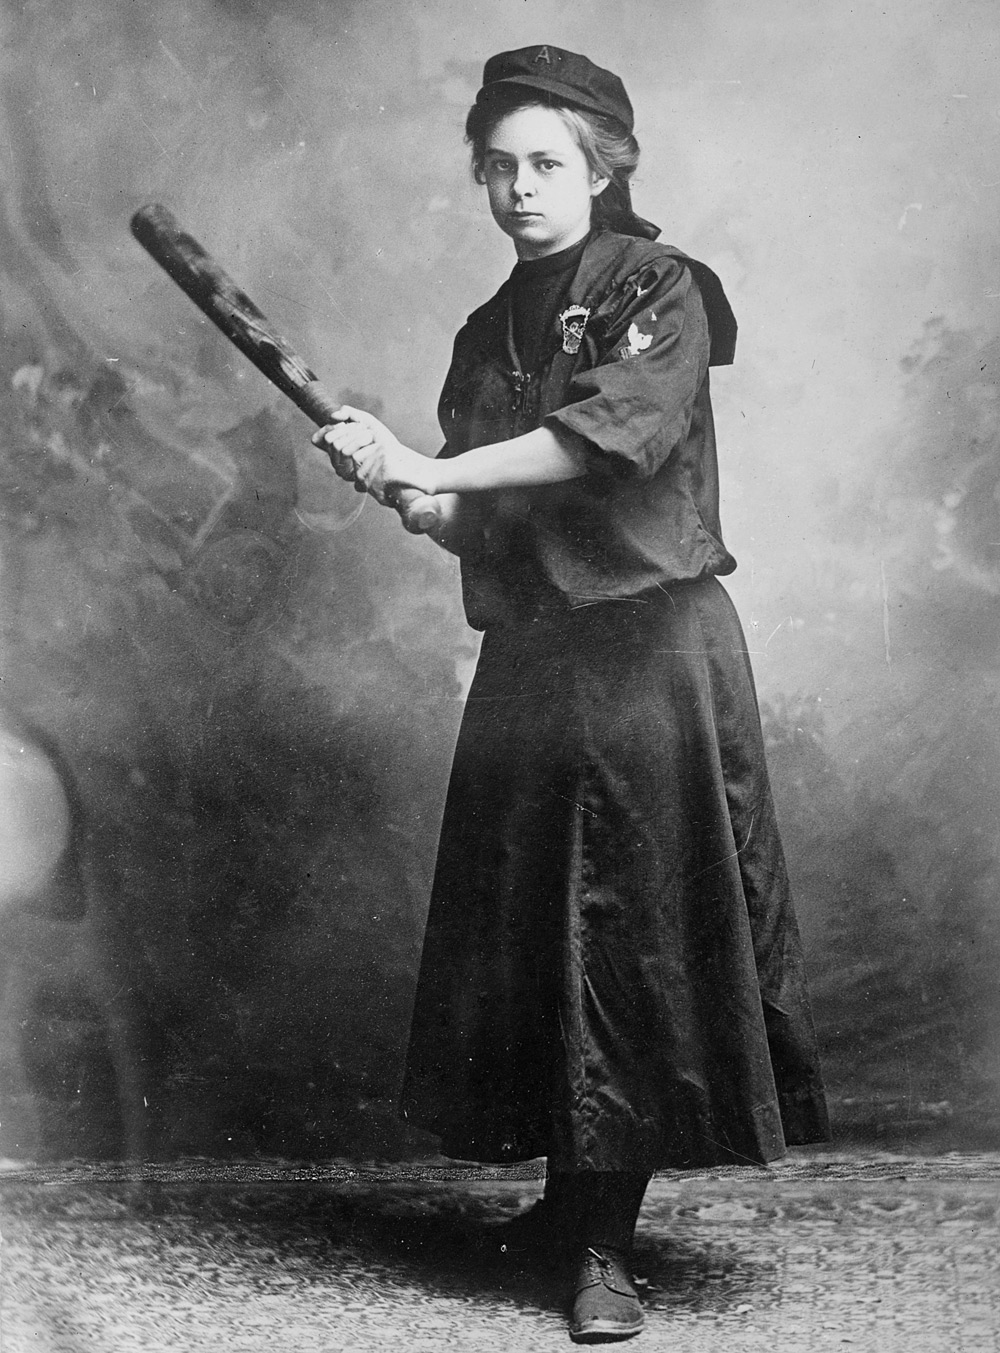 Myrtle Rowe, pictured here in 1910, signed to play first base for the Antler Athletic Club at 18.